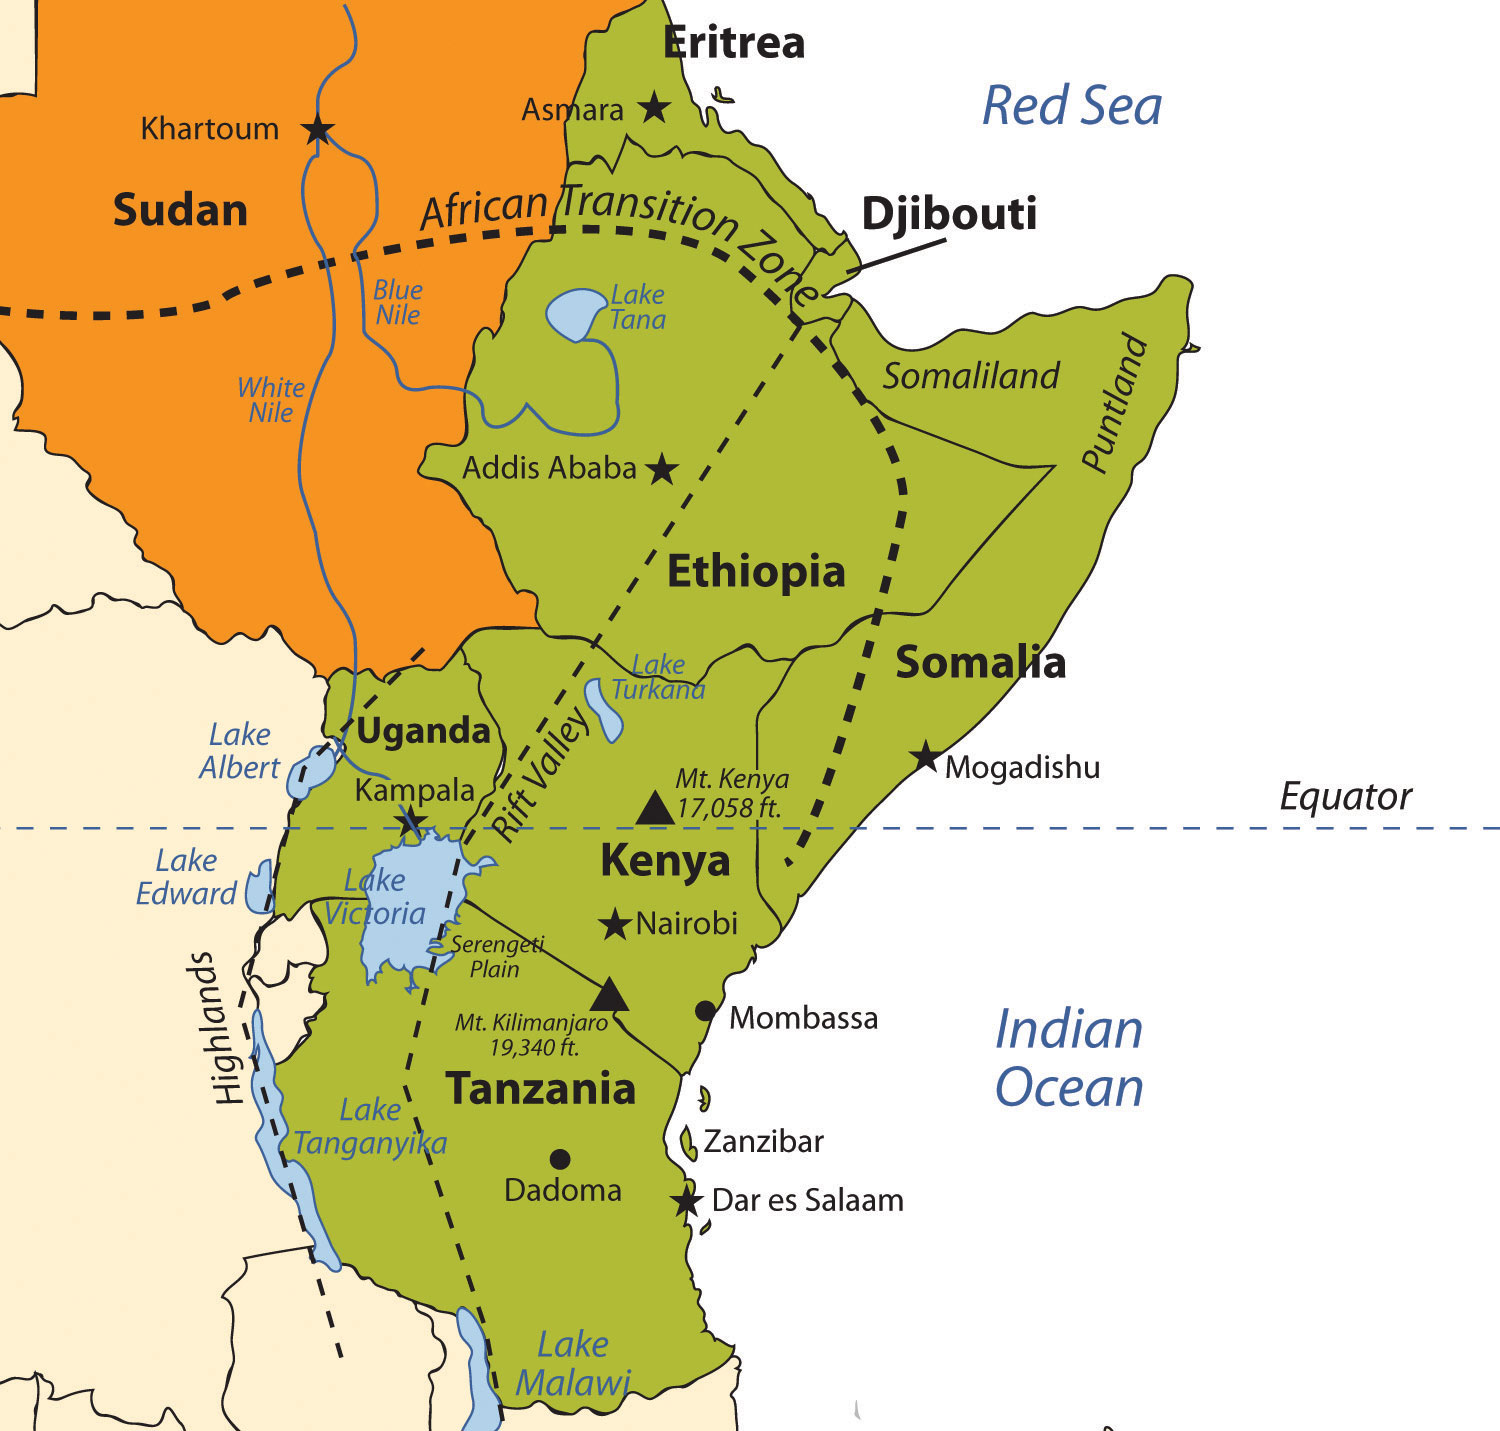 where is the serengeti plain on a map of africa 7 5 East Africa World Regional Geography People Places And where is the serengeti plain on a map of africa